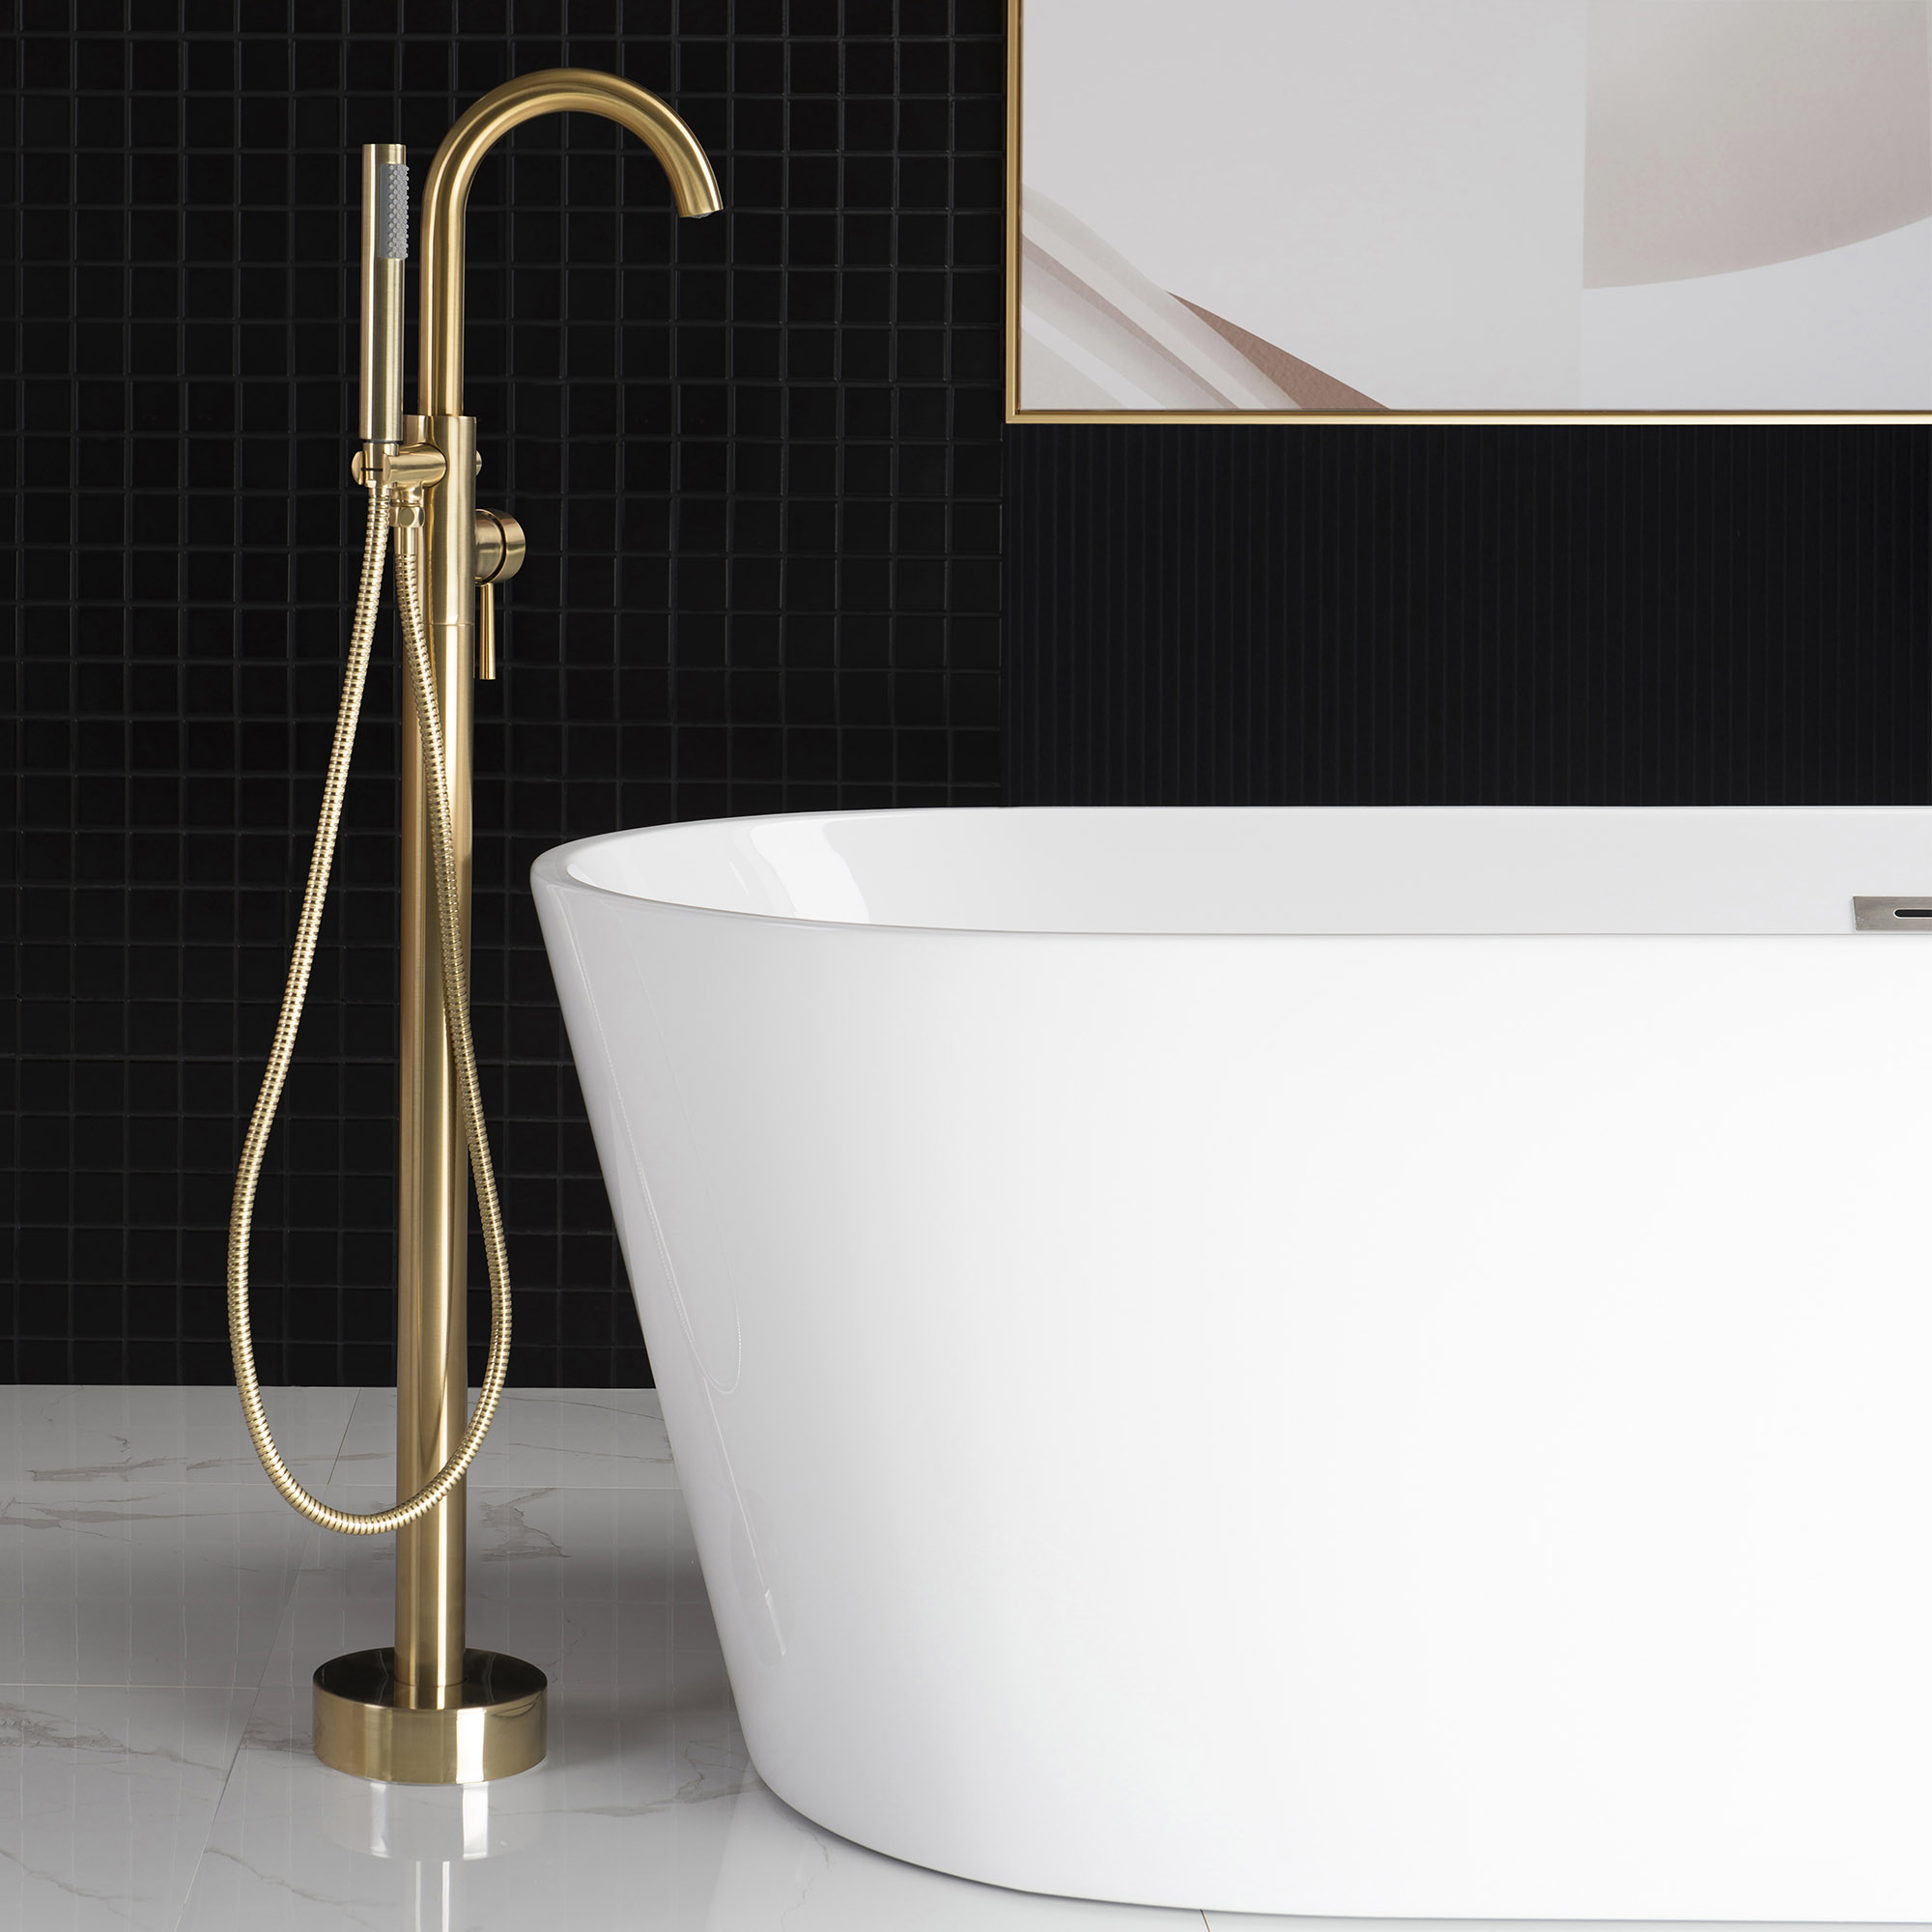 Woodbridge F0007 BG Freestanding Tub Filler Bathtub Floor Mount Brass Bathroom Faucets with Hand Shower, F-0007 Golden, Brushed Gold